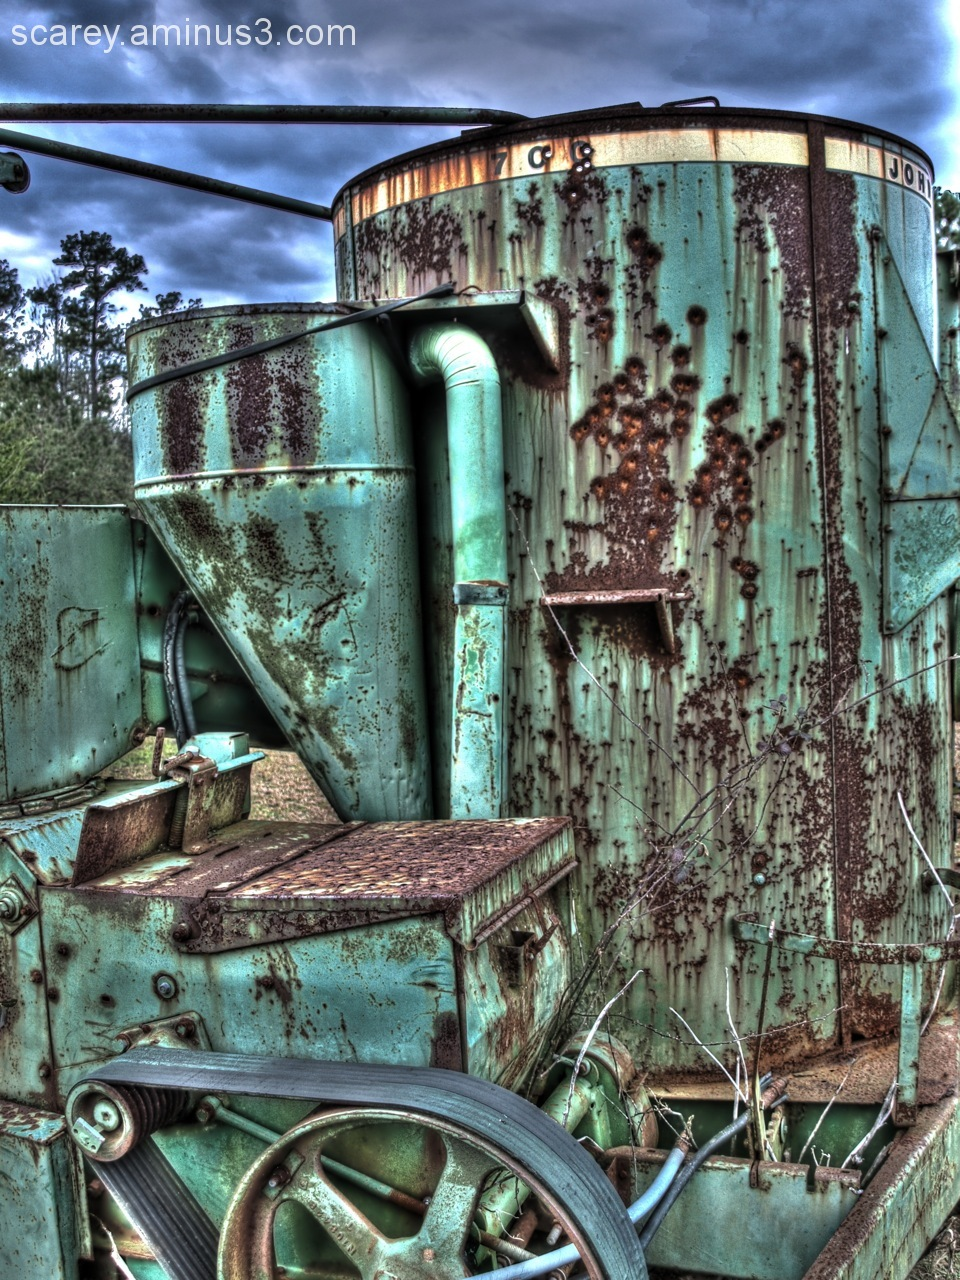 HDR Image Farm Equipment Hopper